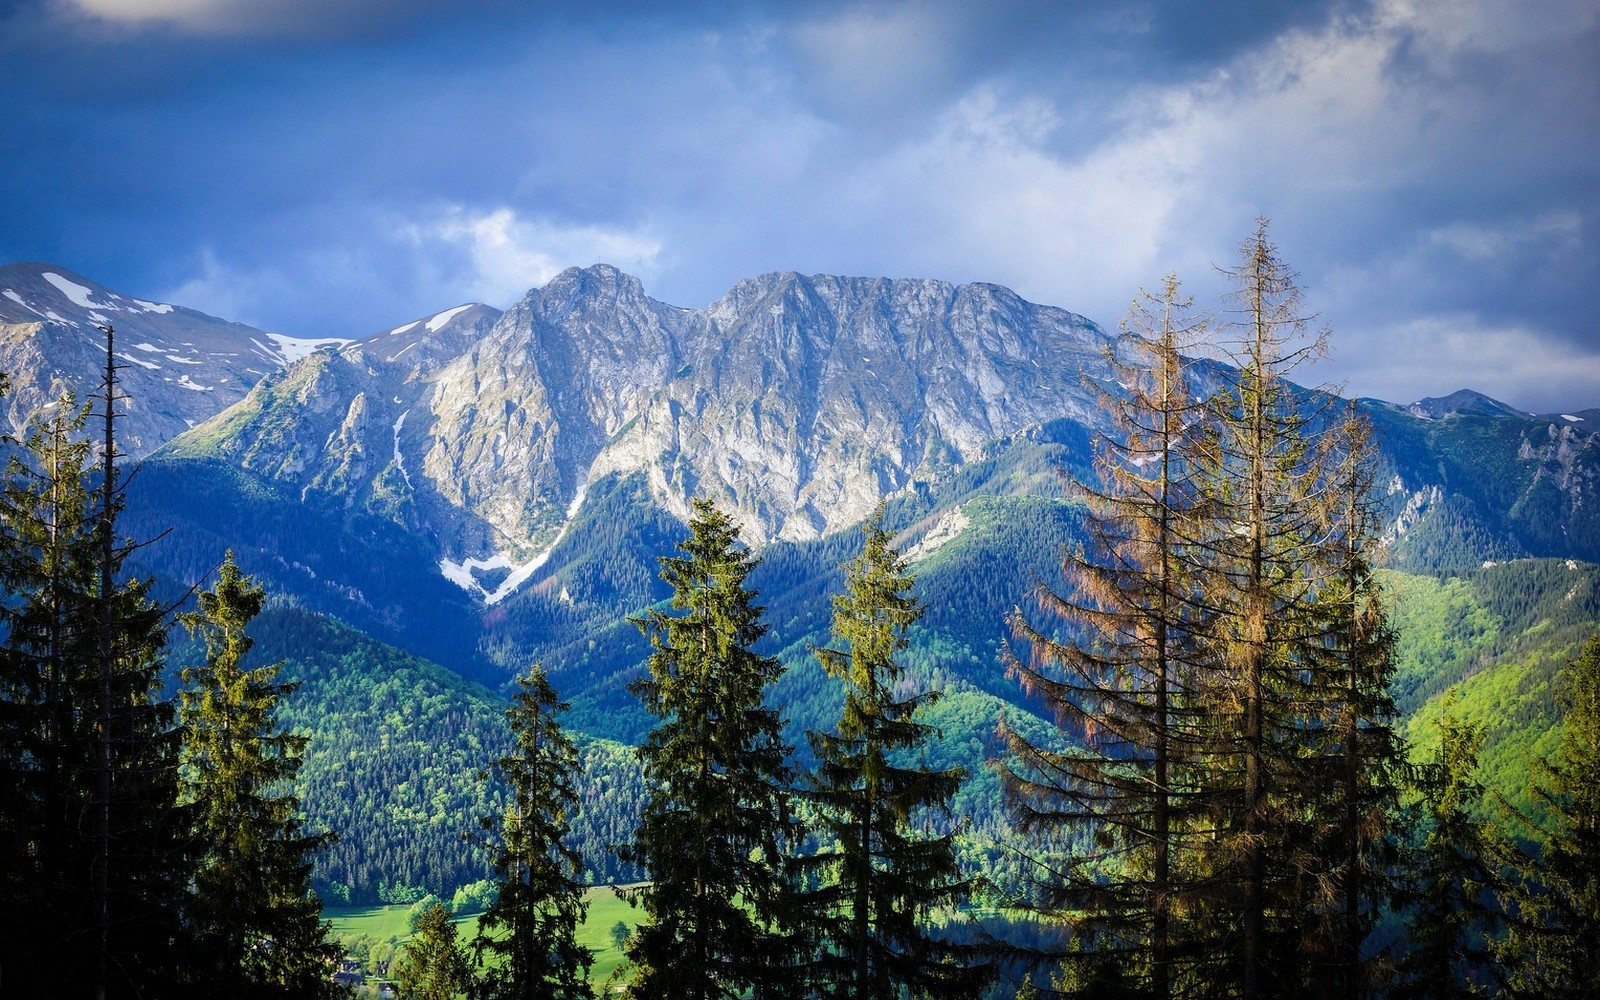 3d Wallpapers For Pc 1920x1080 Free Download Nature Landscape Mountain Forest Carpathians Trees